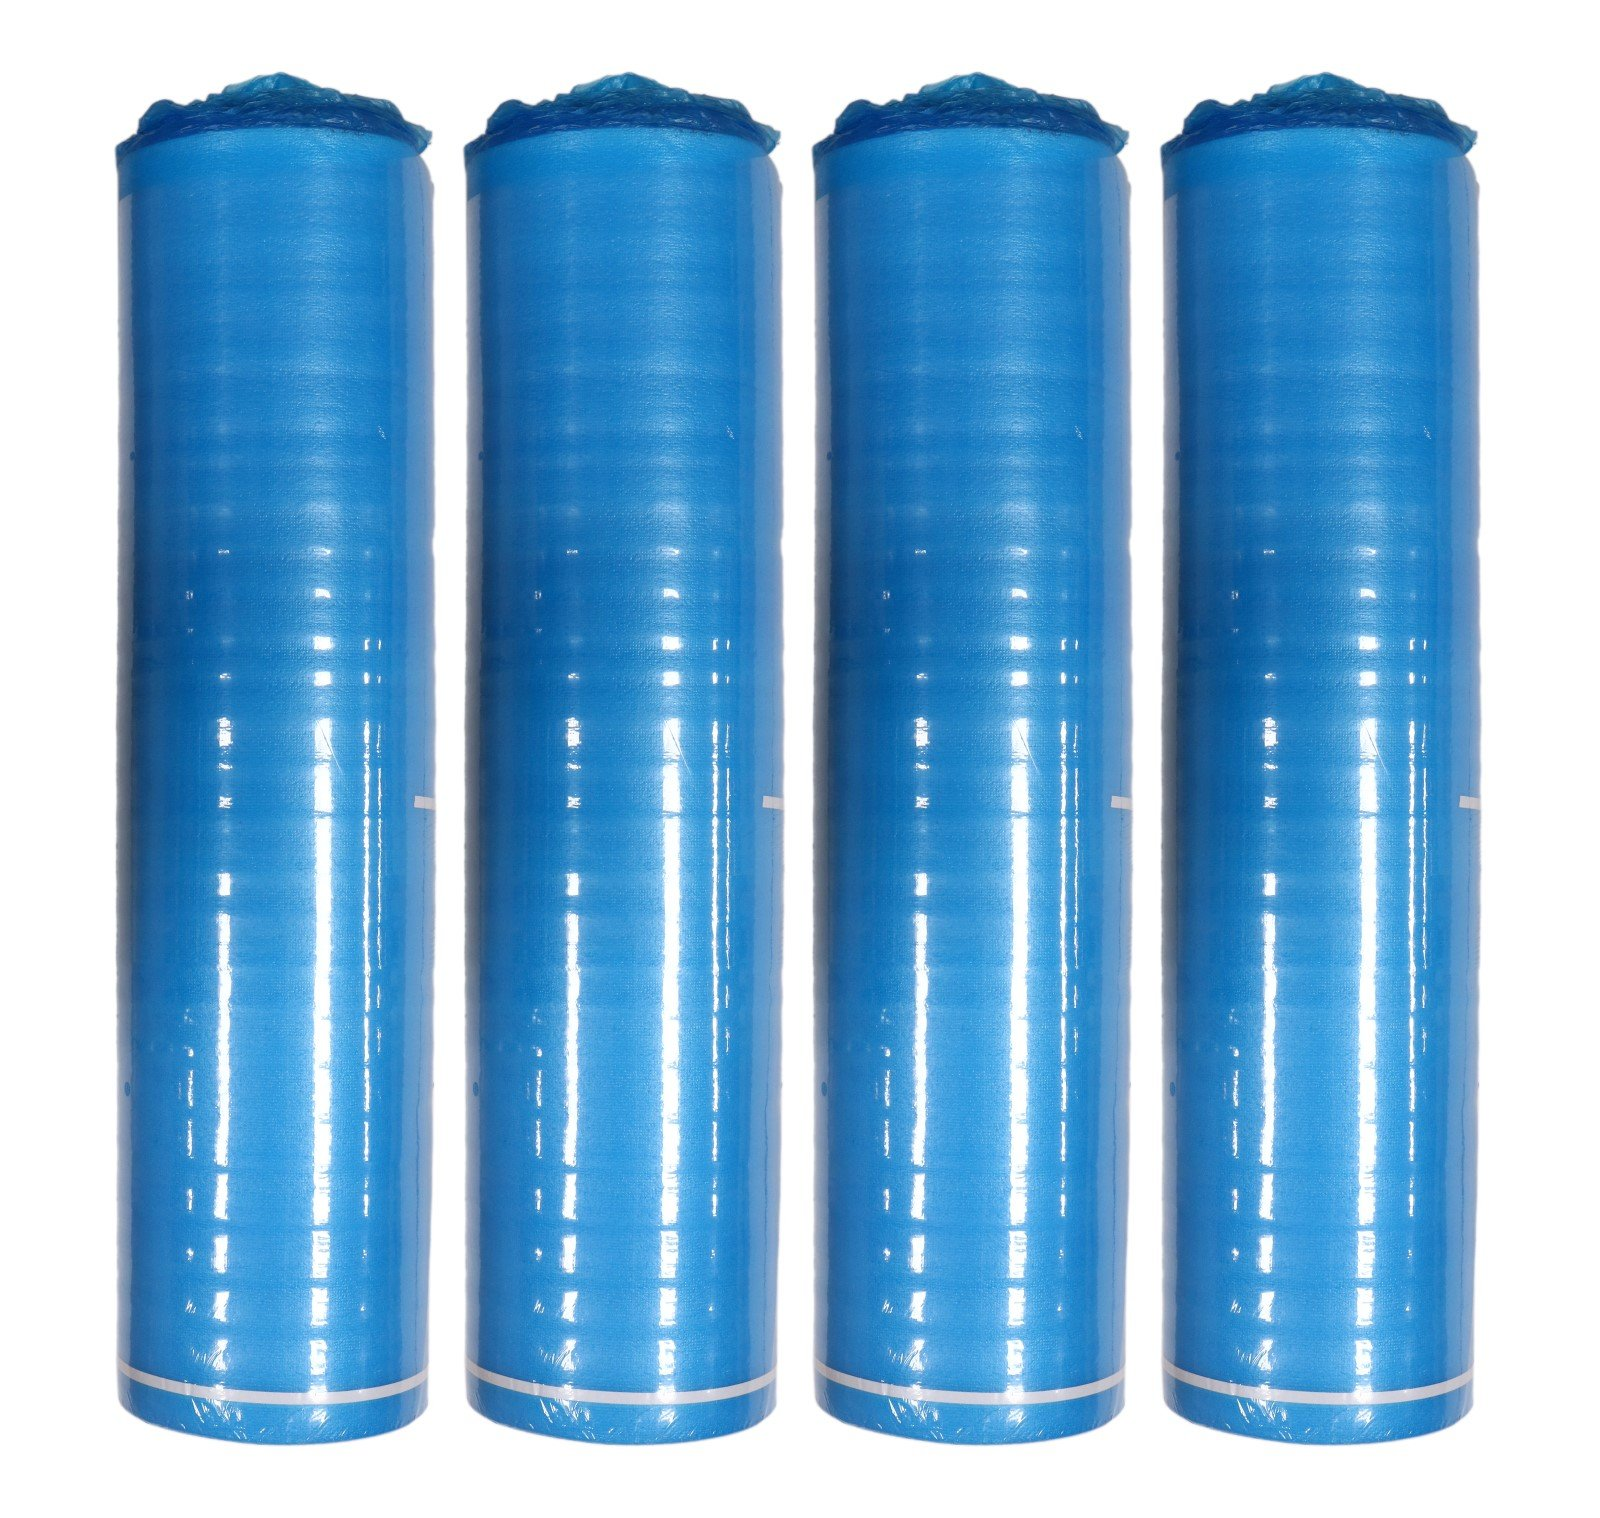 AMERIQUE Premium Floor Underlayment Padding with Moisture Barrier & Tape 3-in-1 Heavy Duty Blue Foam 3MM ROYAL BLUE, (800 SF Total, Bundle of 4 Rolls, 200 SF/Roll) Limited Time Promotion, 800 sq. ft.